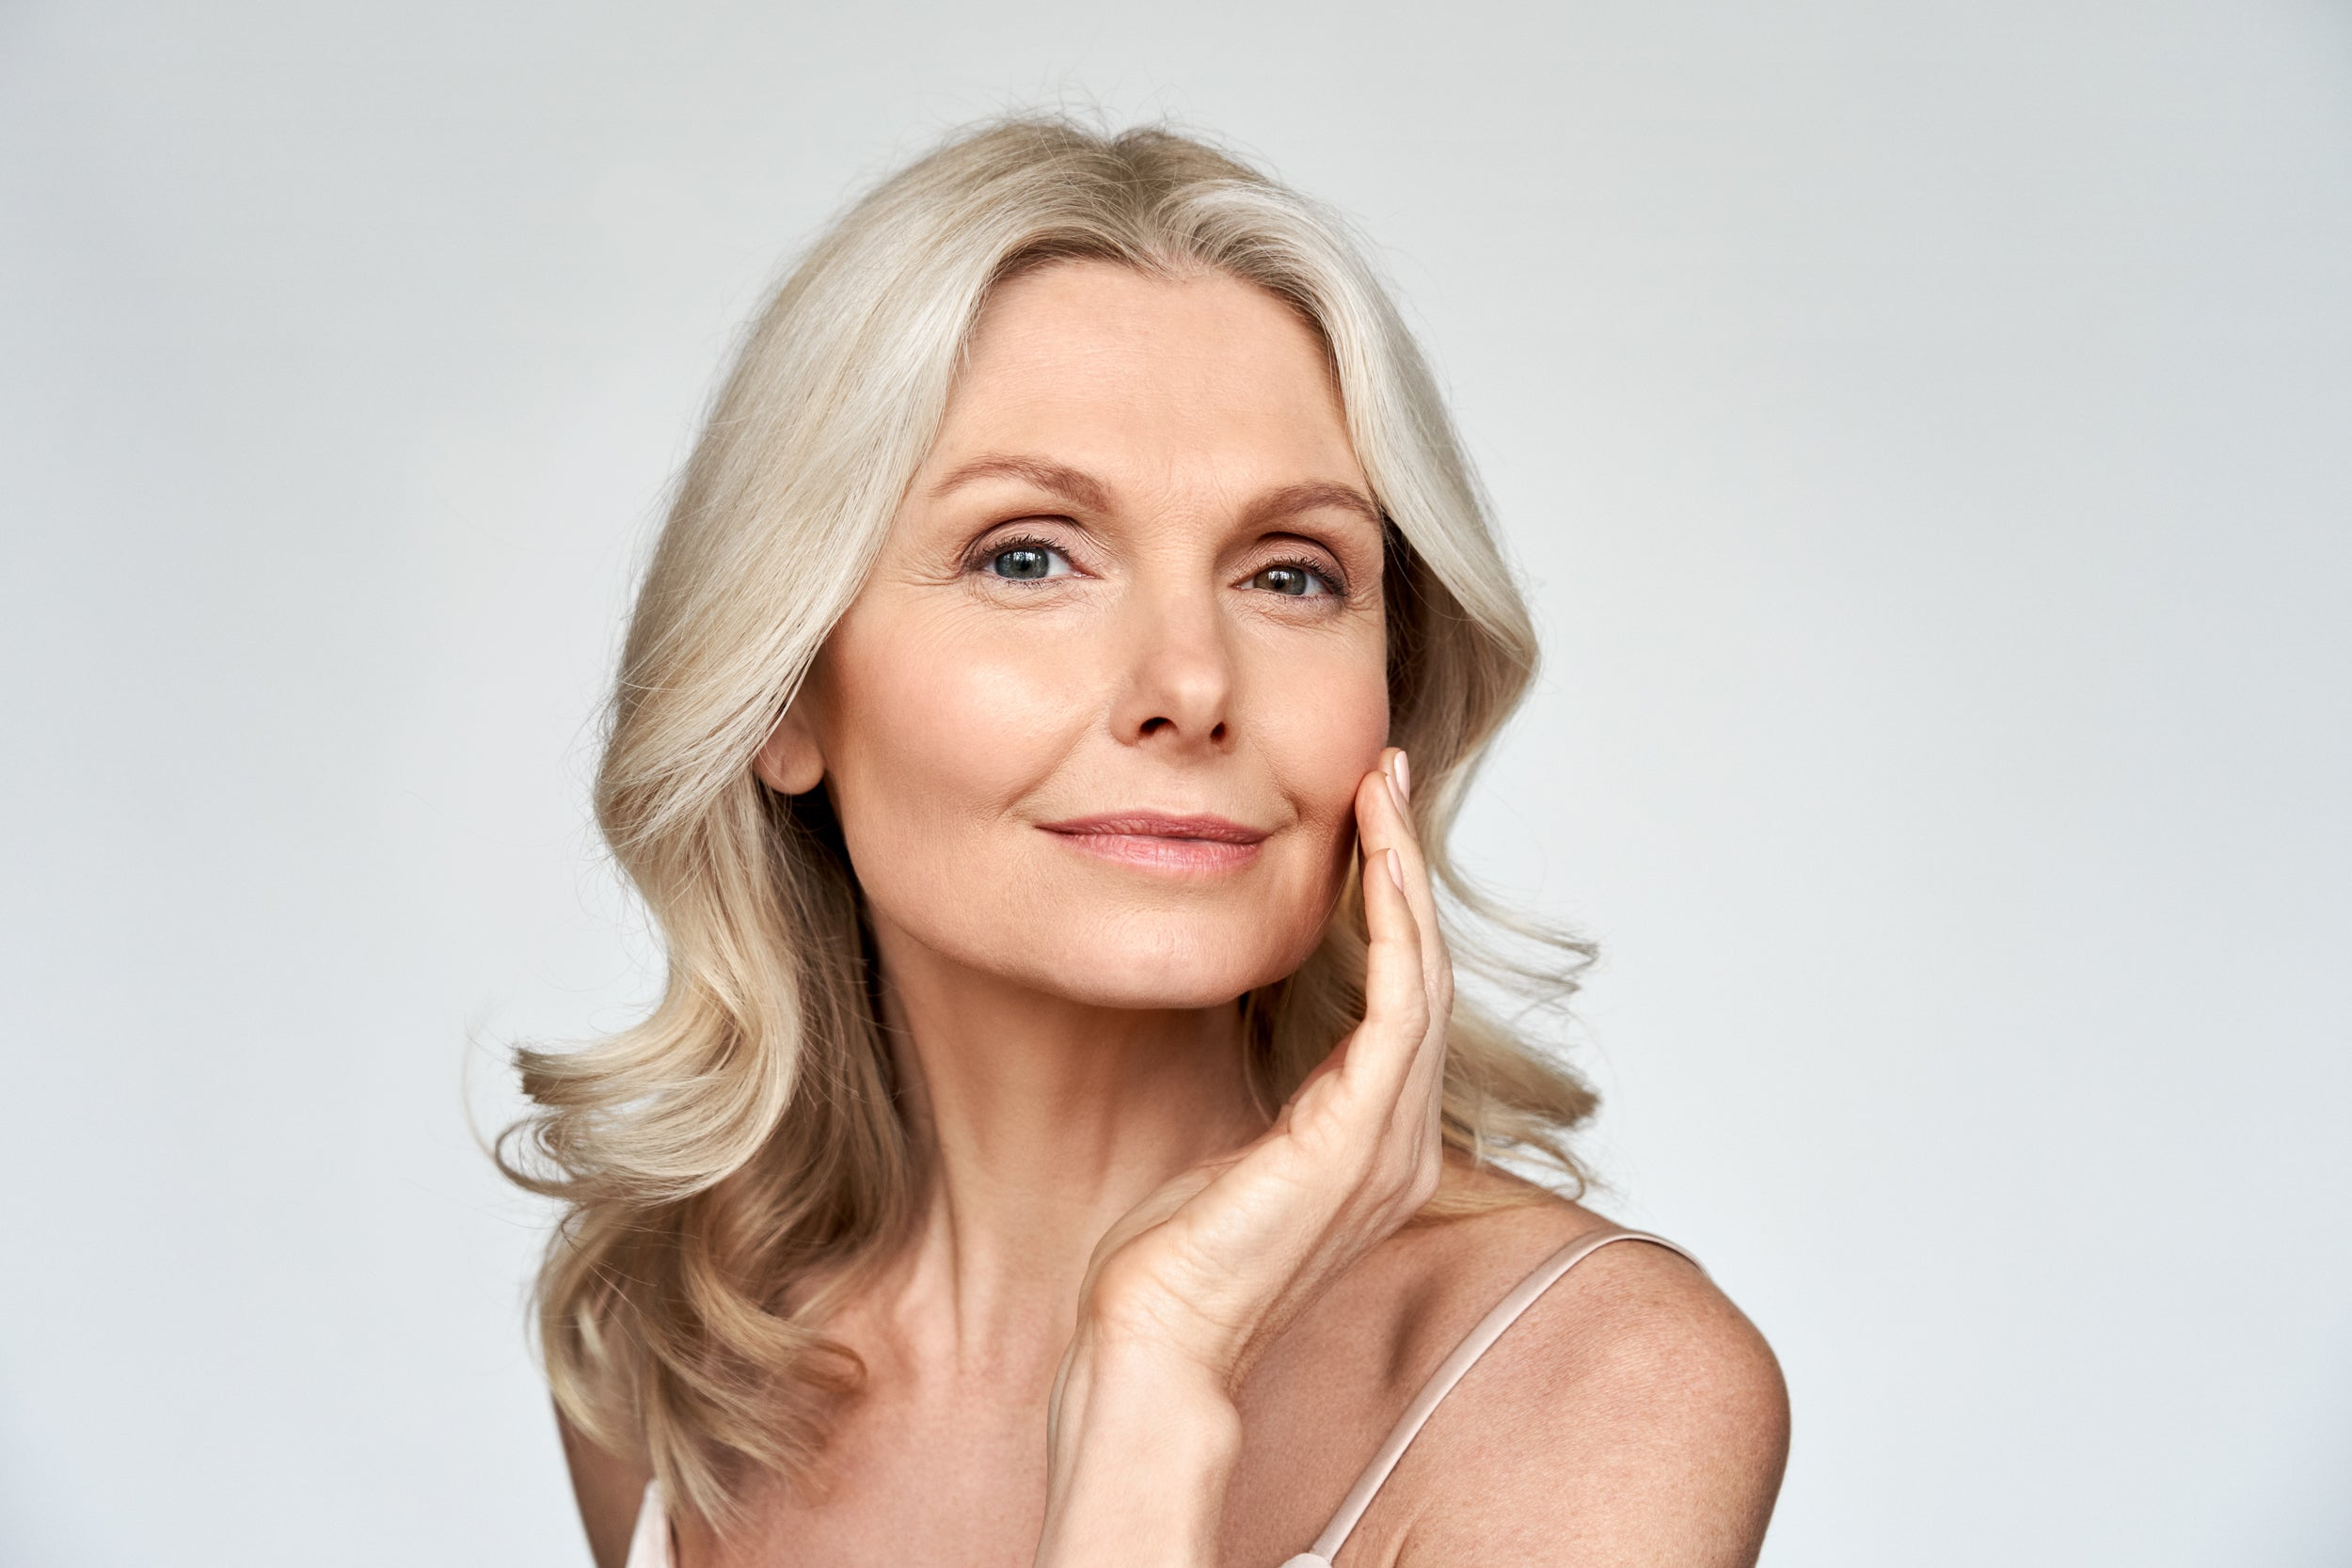 MyExceptionalSkinCare.com brings you SkinMedica Advanced+ Serum for removing wrinkles and fine lines